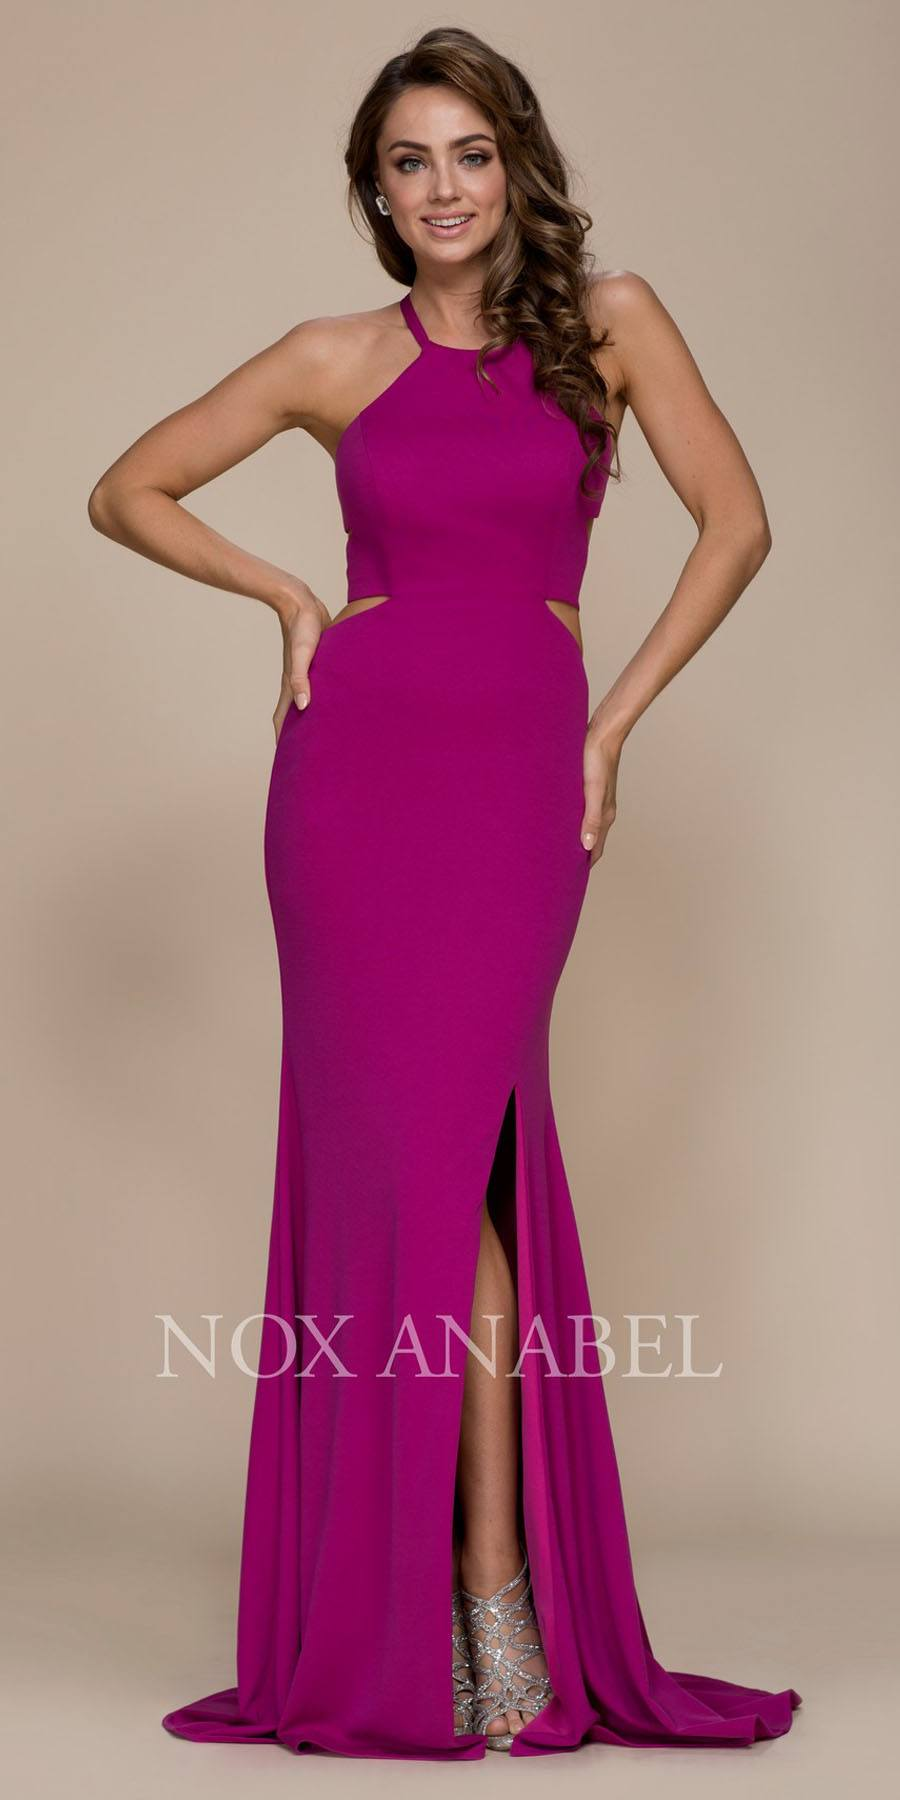 Nox Anabel C026 Burgundy Halter Cut Out Long Prom Dress Strappy Back ...